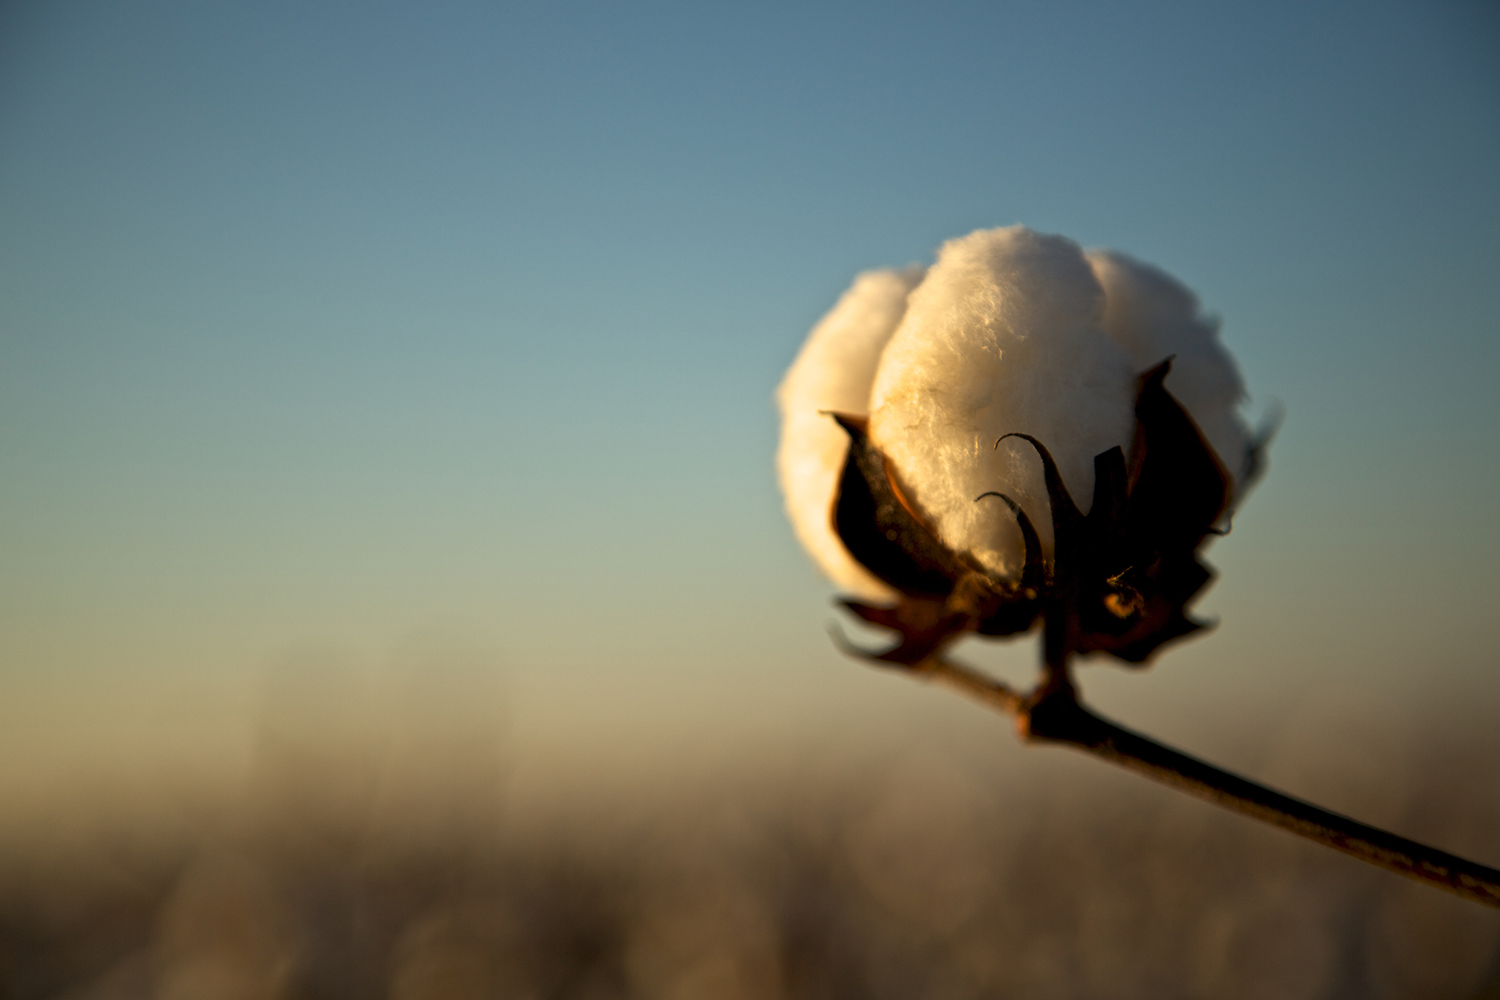 Cotton_USA_003.jpg